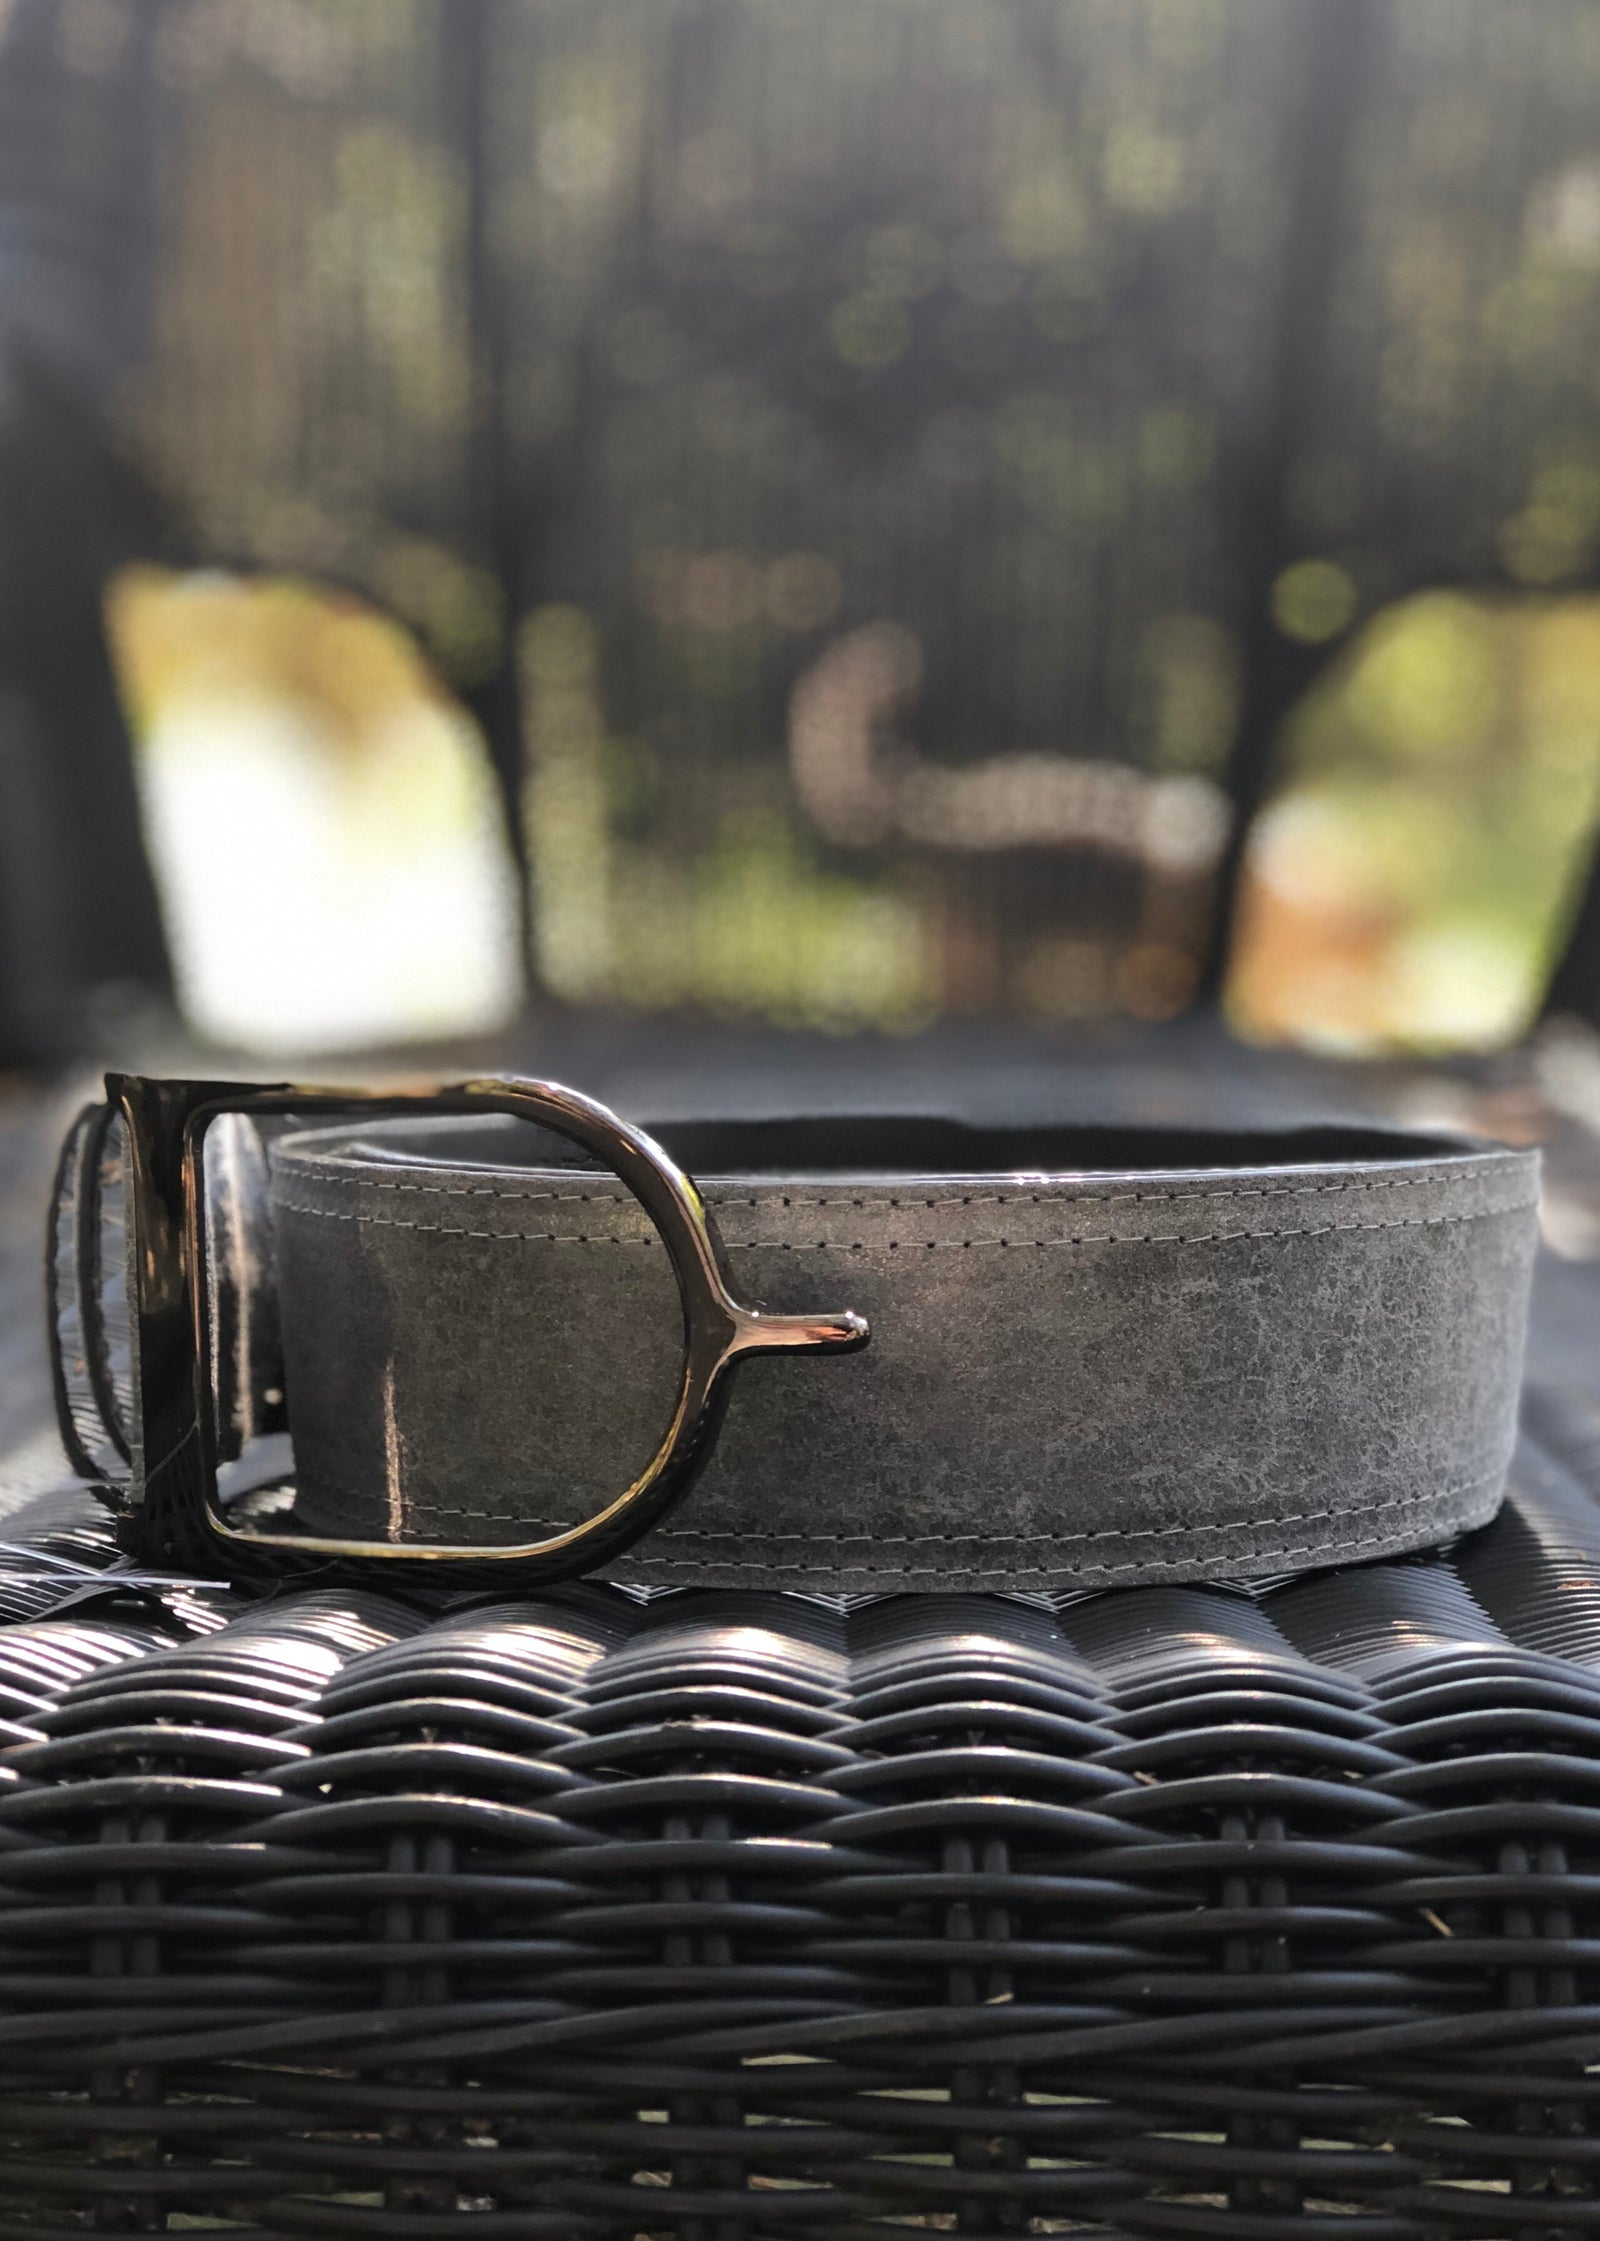 Duftler Spur Belt Charcoal Marble Distressed Gunmetal Buckle